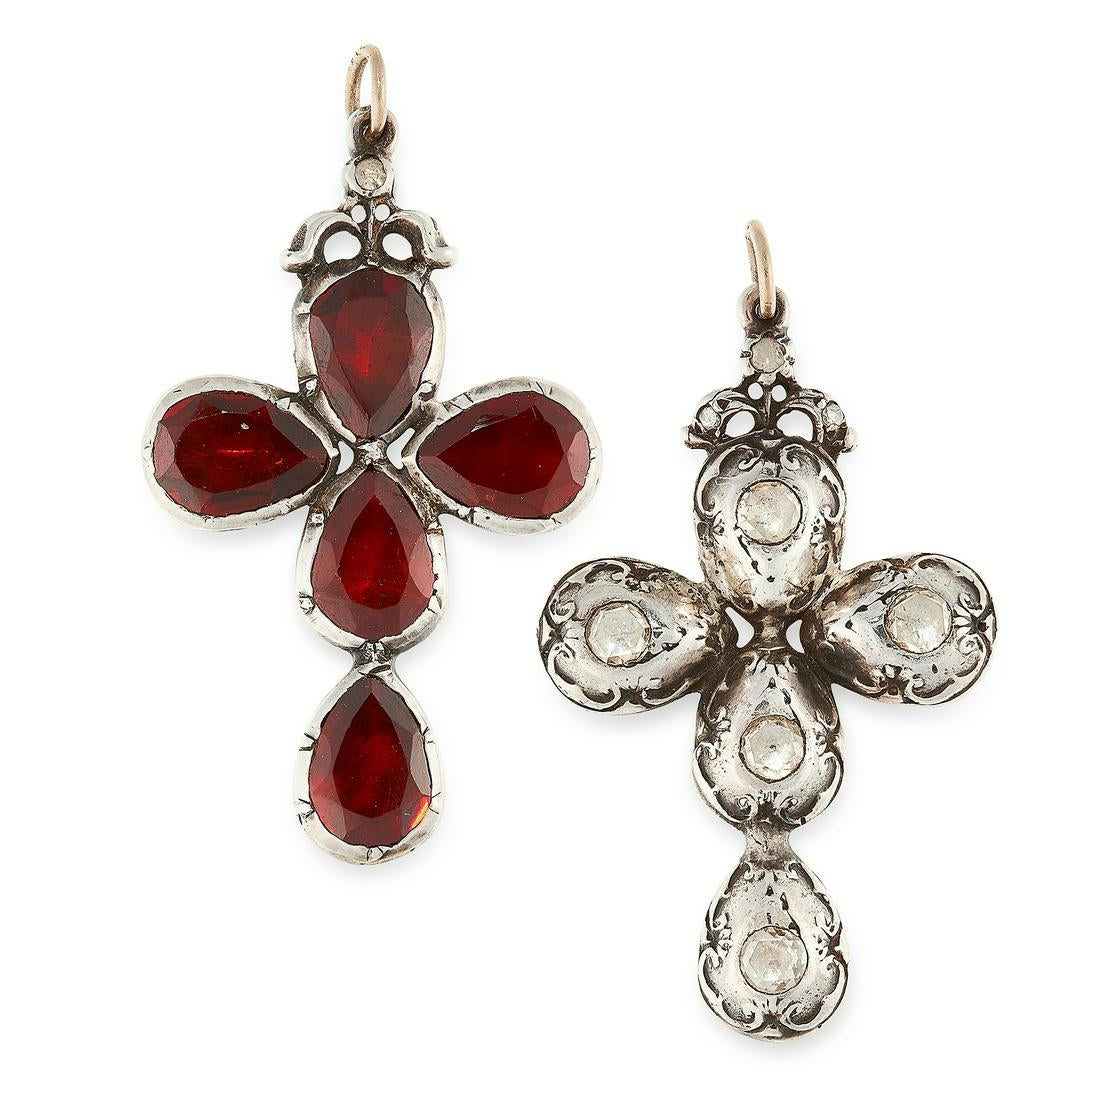 AN ANTIQUE DIAMOND AND GARNET CROSS PENDANT, 18TH OR 19TH CENTURY in silver, formed as a cross, - Image 2 of 2